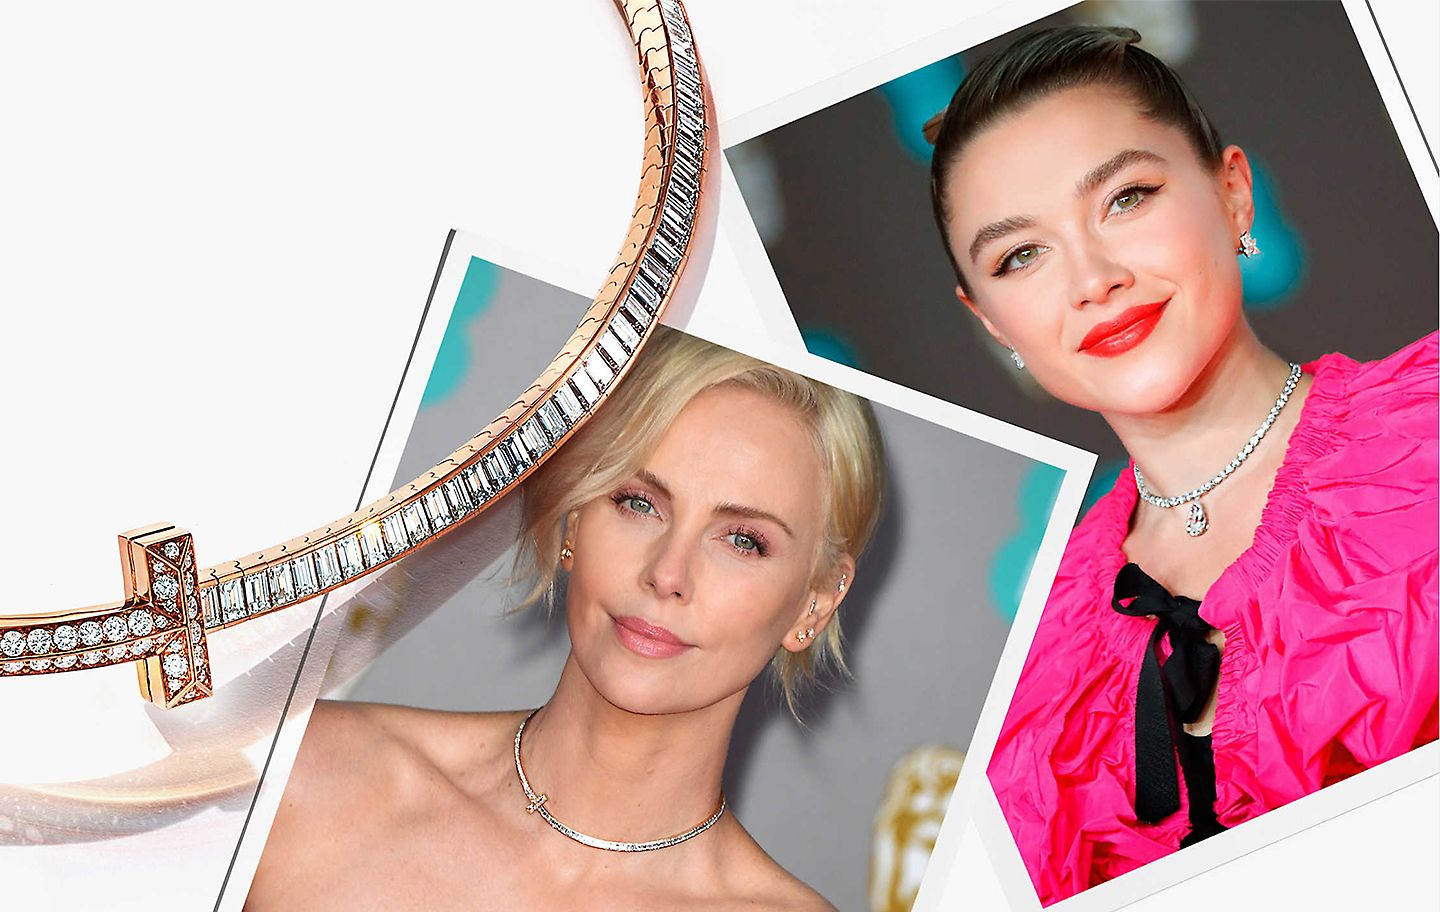 Charlize Theron at the BAFTA® Awards in a Tiffany T1 choker